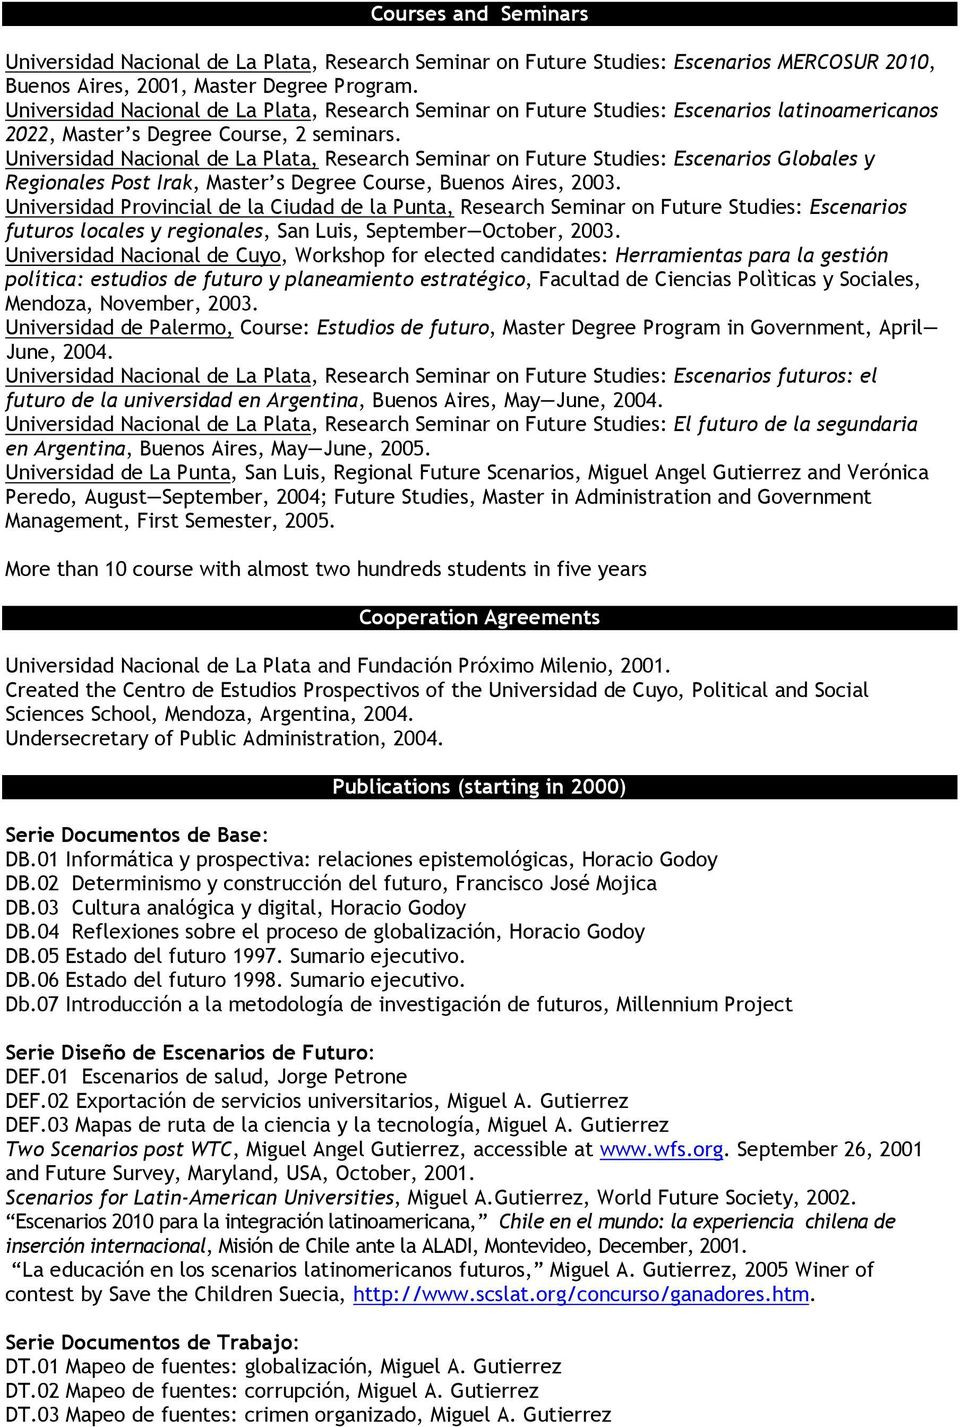 Universidad Nacional de La Plata, Research Seminar on Future Studies: Escenarios Globales y Regionales Post Irak, Master s Degree Course, Buenos Aires, 2003.